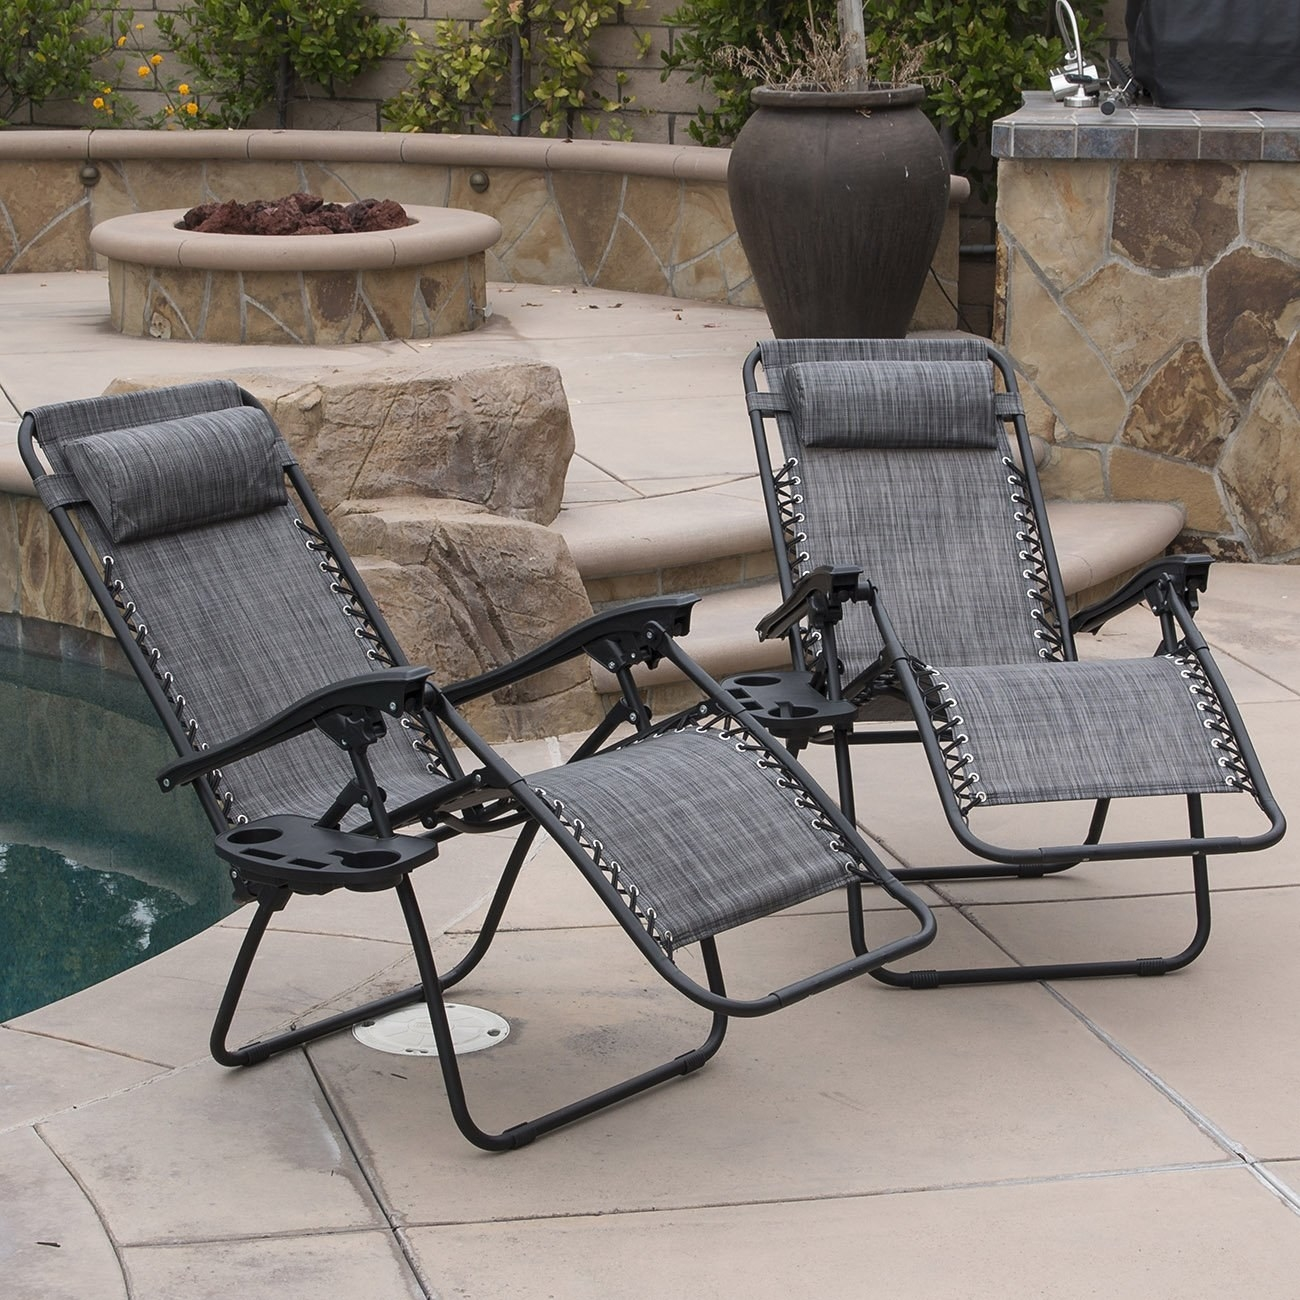 Two grey lounge chairs by a pool